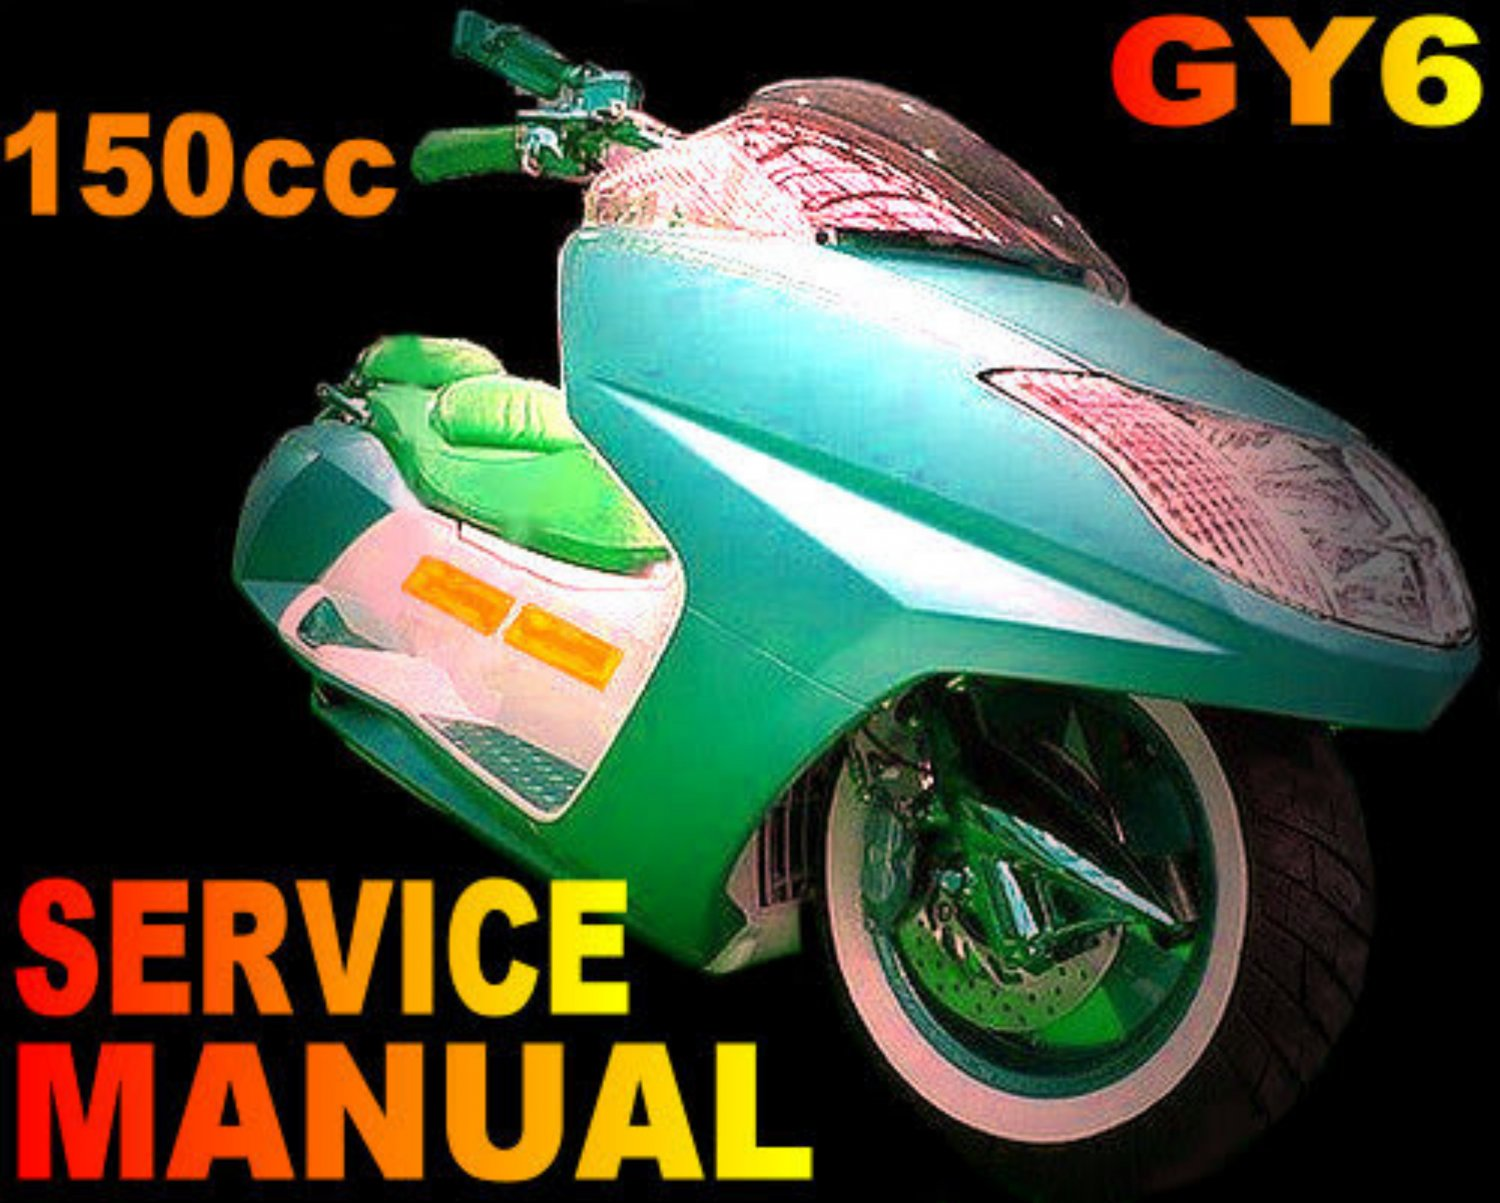 Scooter 150cc Service Repair Manual Longbo Merato Peace Sports VIP Tao Tao Madami